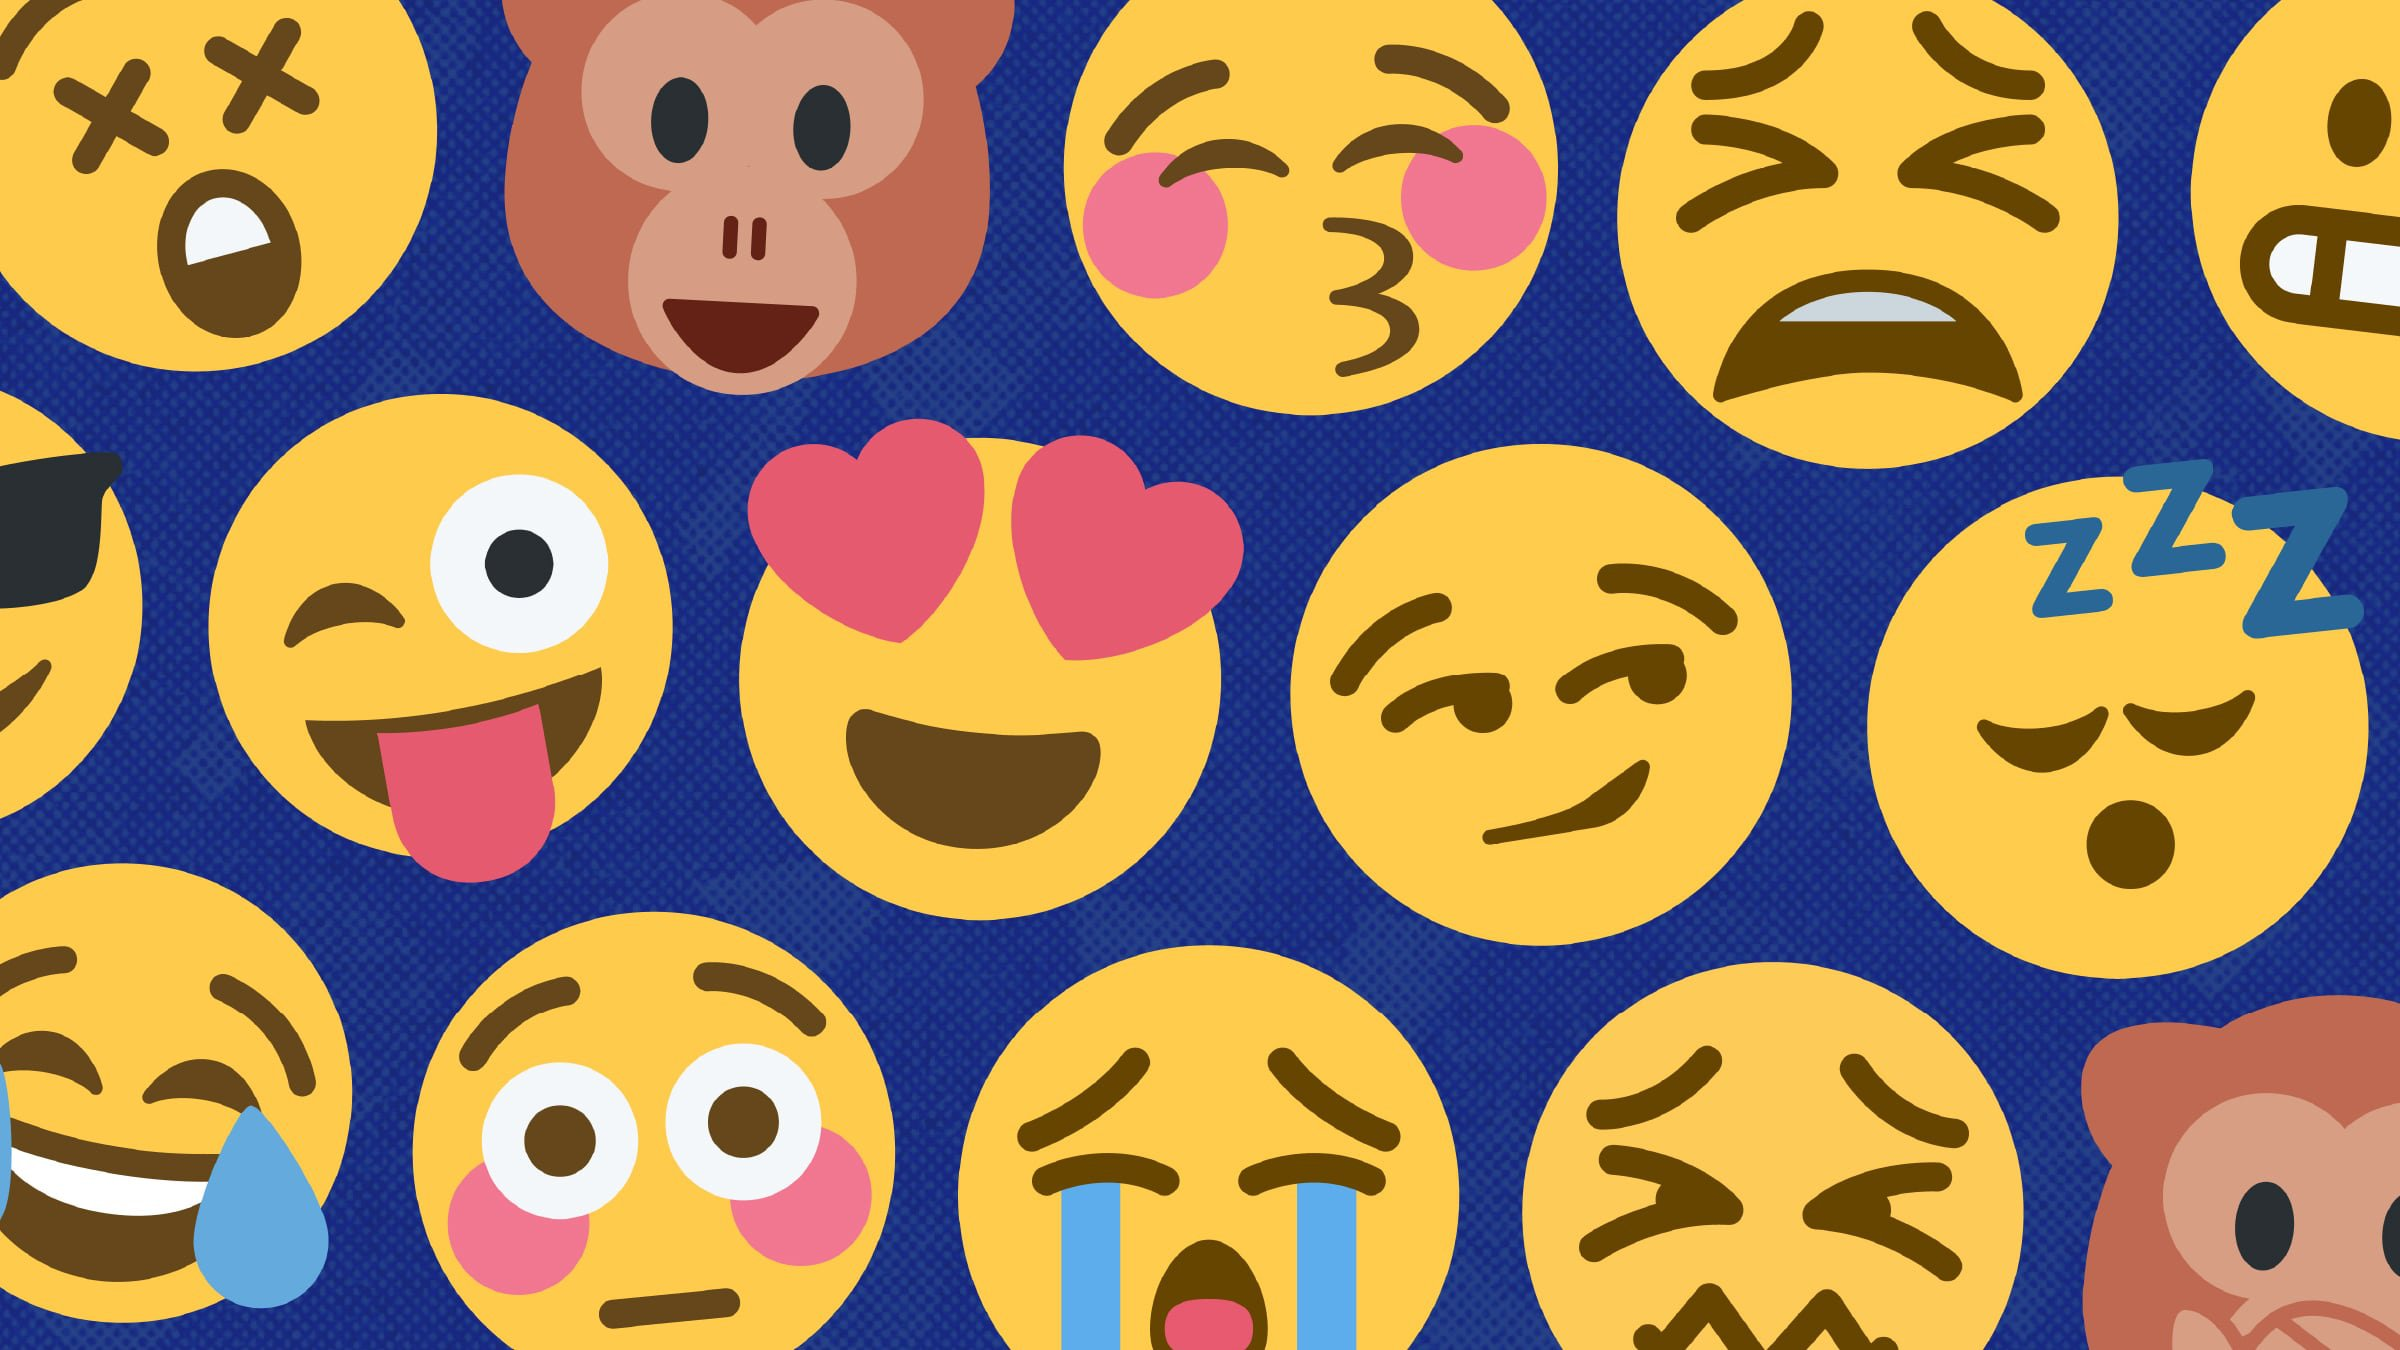 And collage of various yellow emoji faces smiling, laughing, and crying set over a blue background.